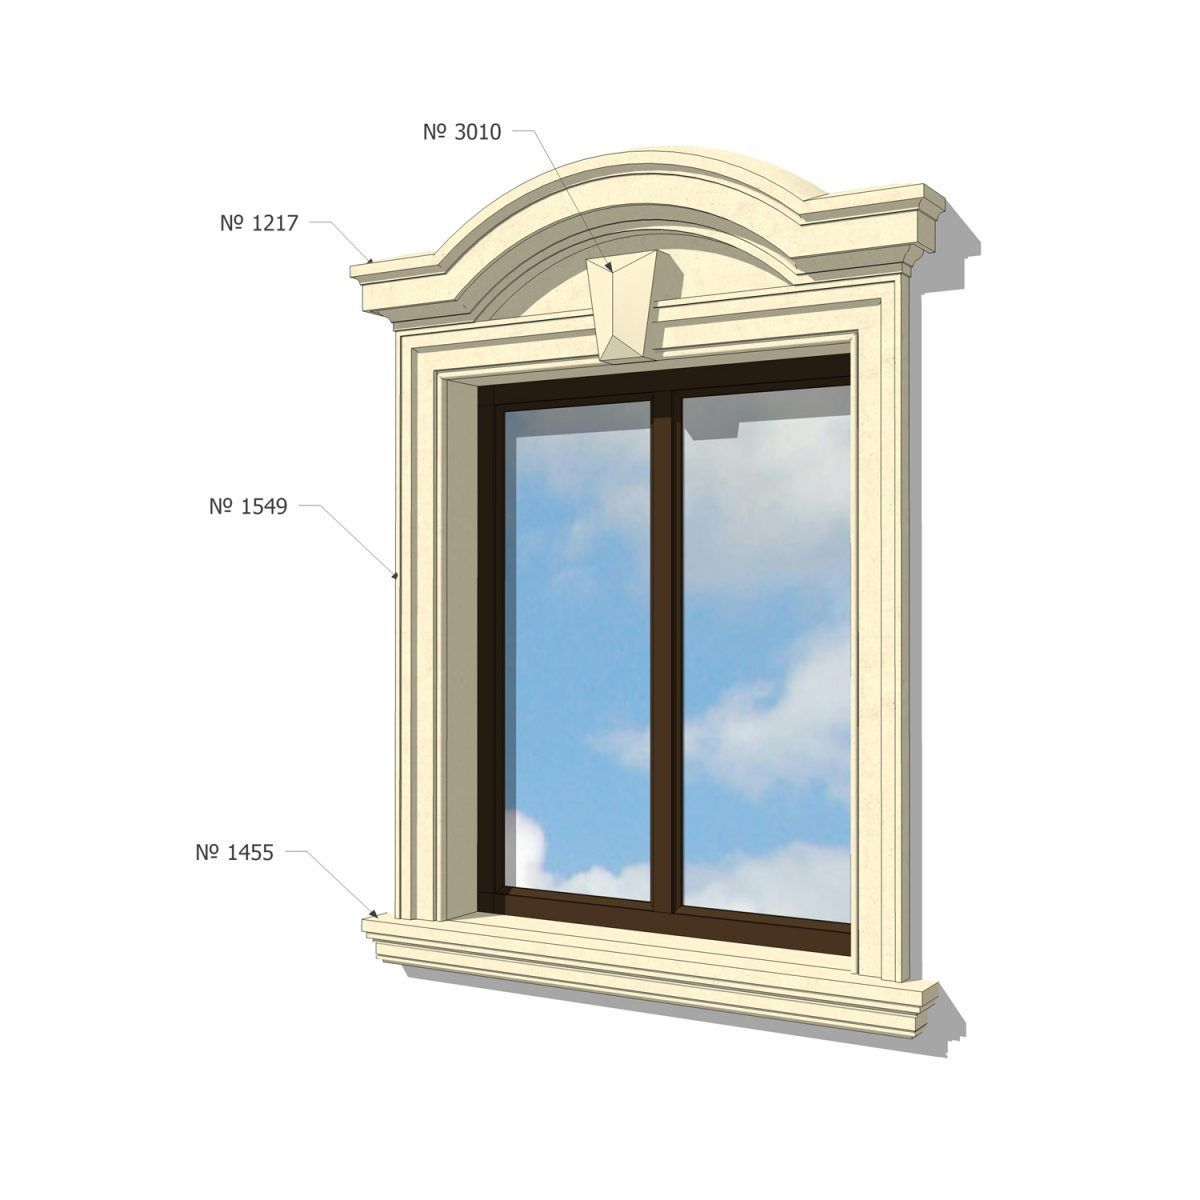 Window Framing Trim 10 Exterior Frame Designs Window Framing Trim On The Facade Of The H In 2020 House Designs Exterior Front Window Design Exterior Wall Cladding